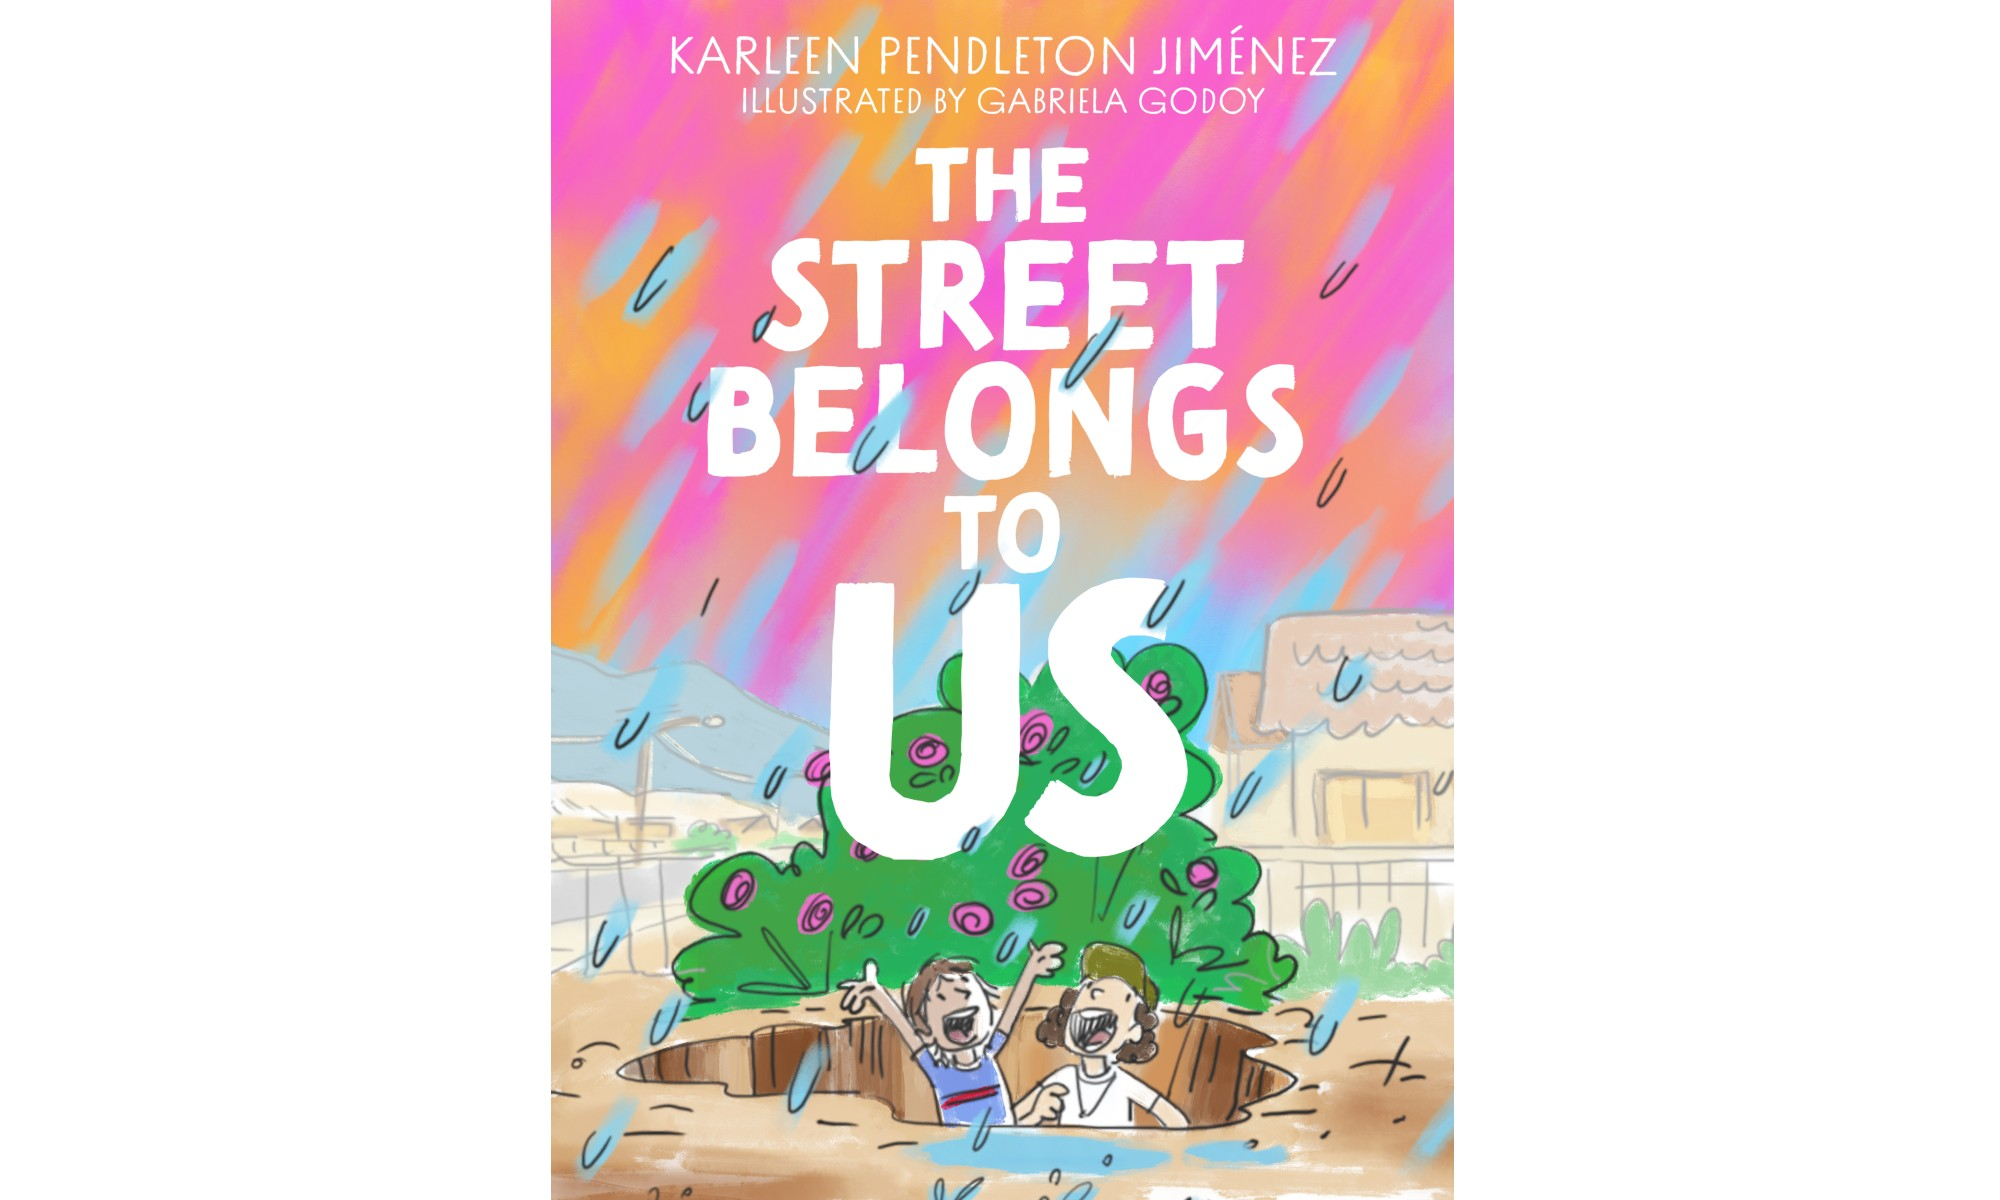 The cover of The Street Belongs to Us